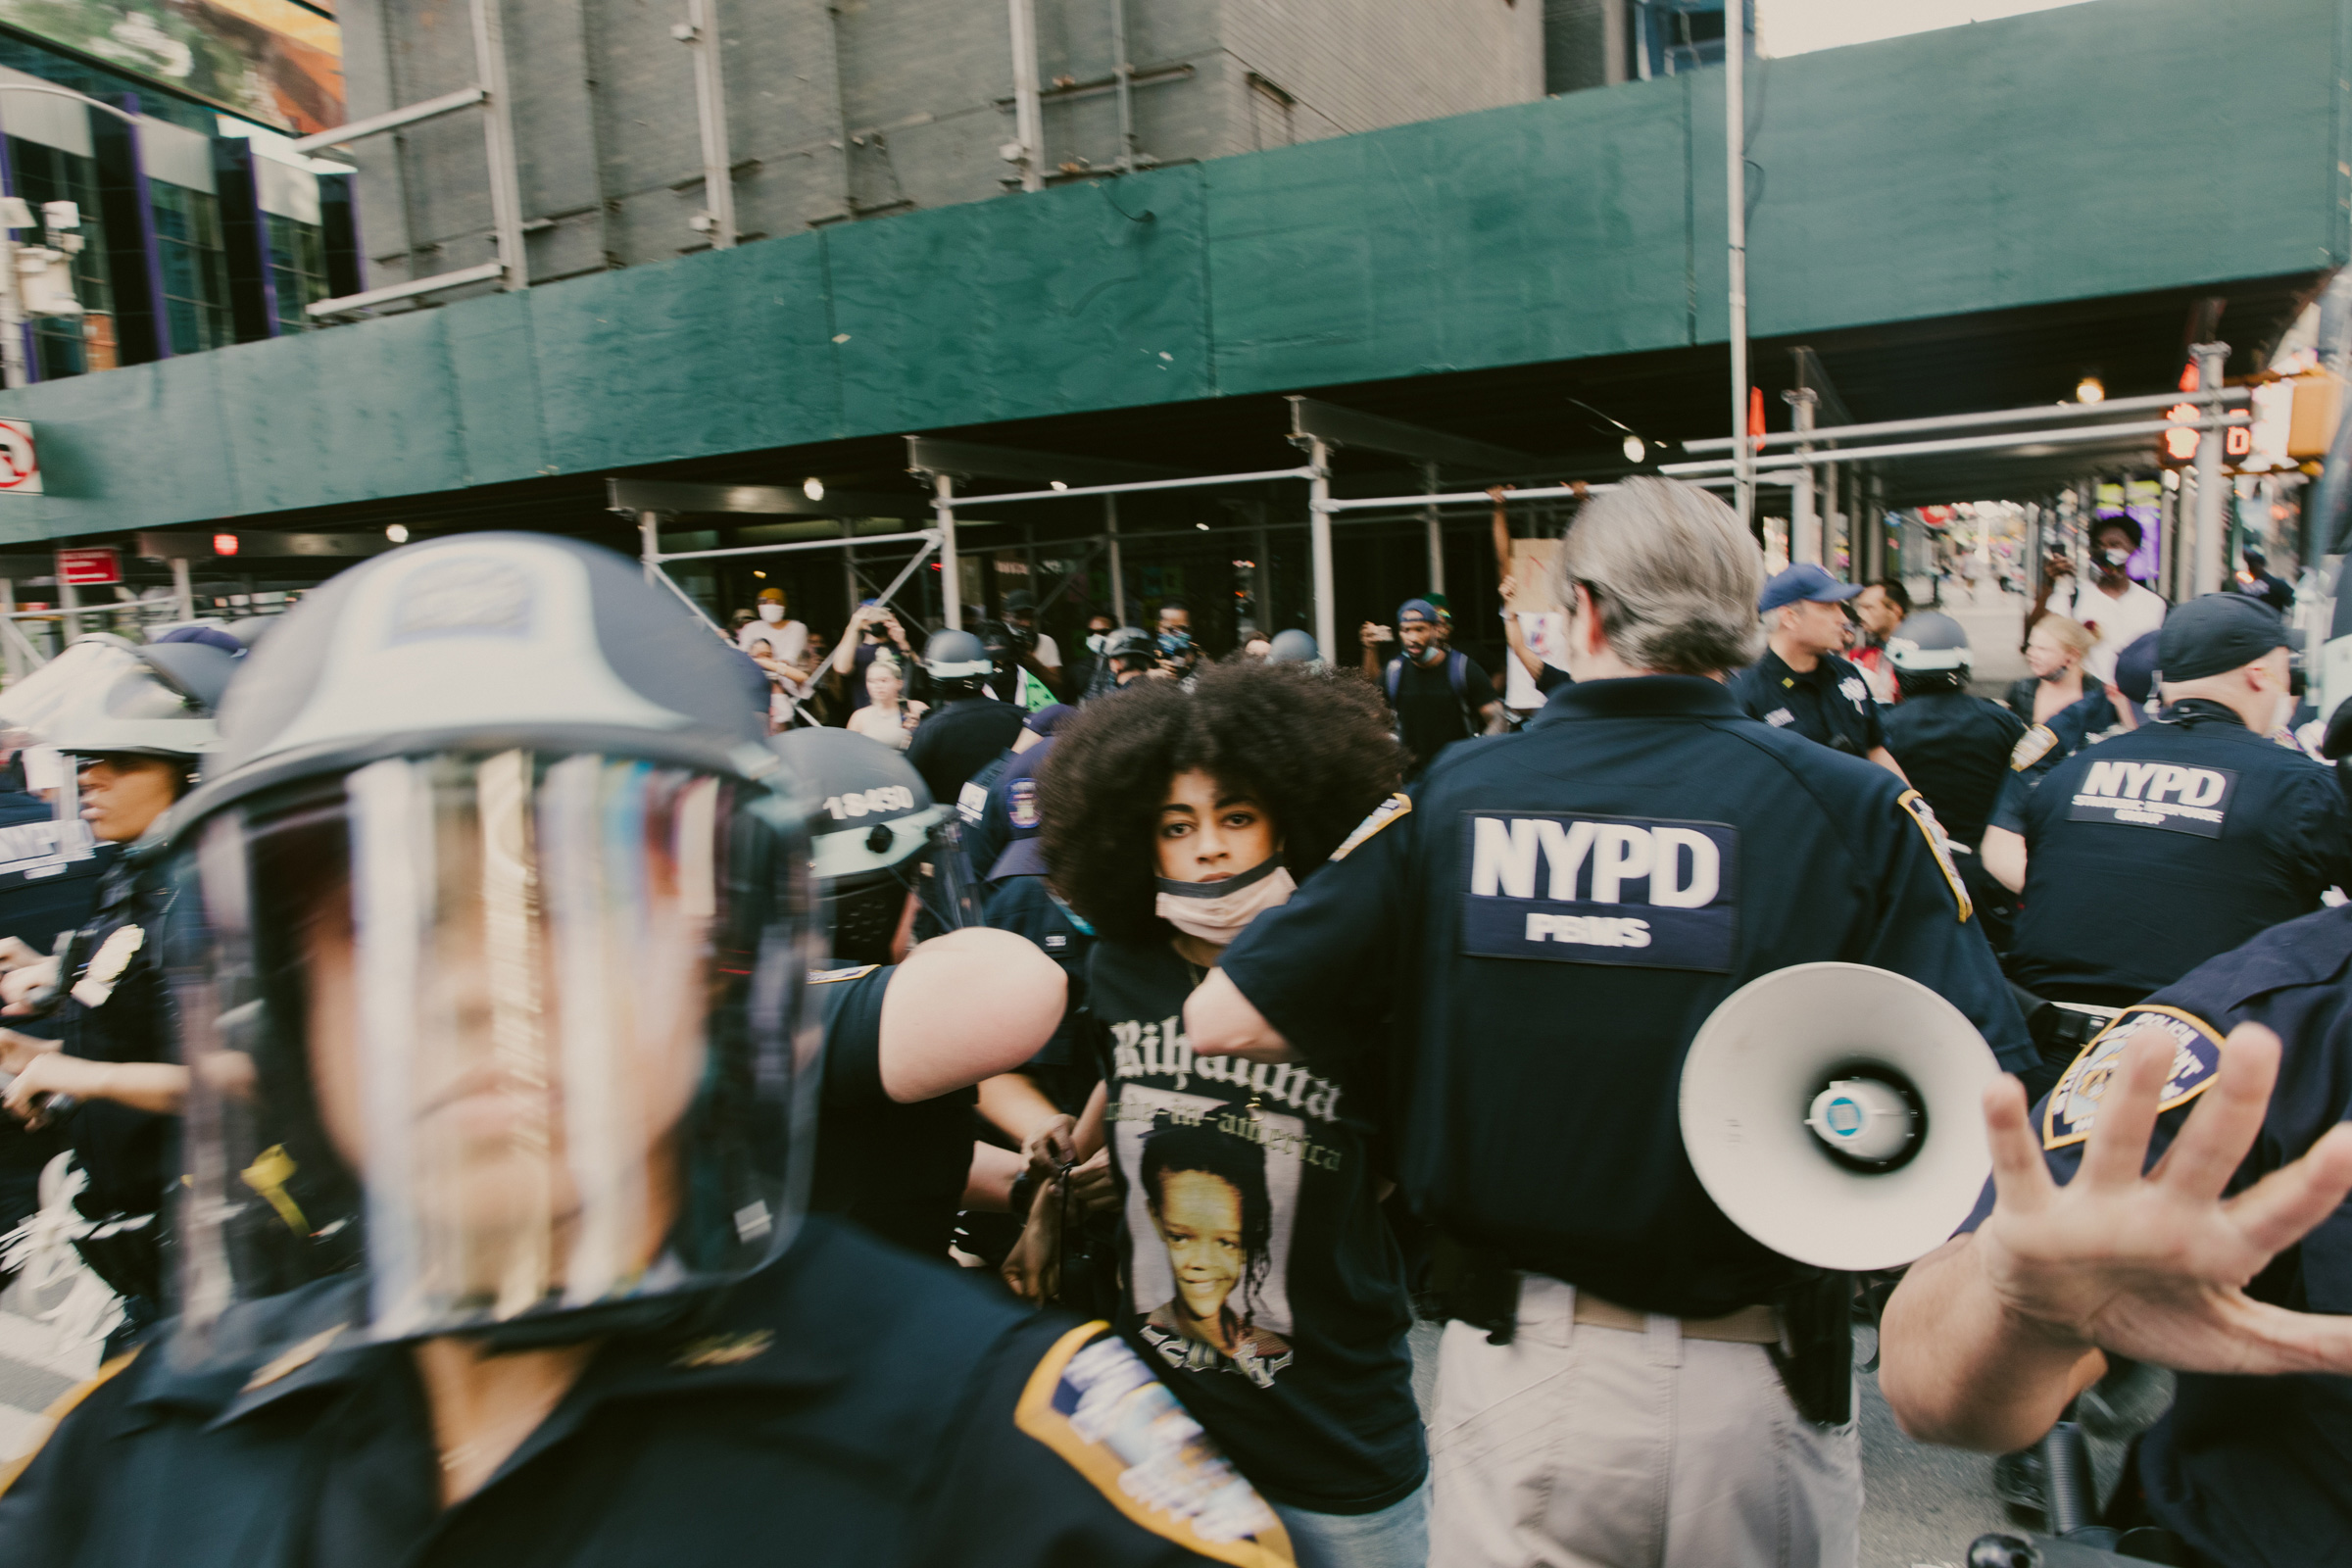 Ria Foye as she is arrested in Times Square after peacefully marching from Harlem on May 30. She was detained for more than seven hours.